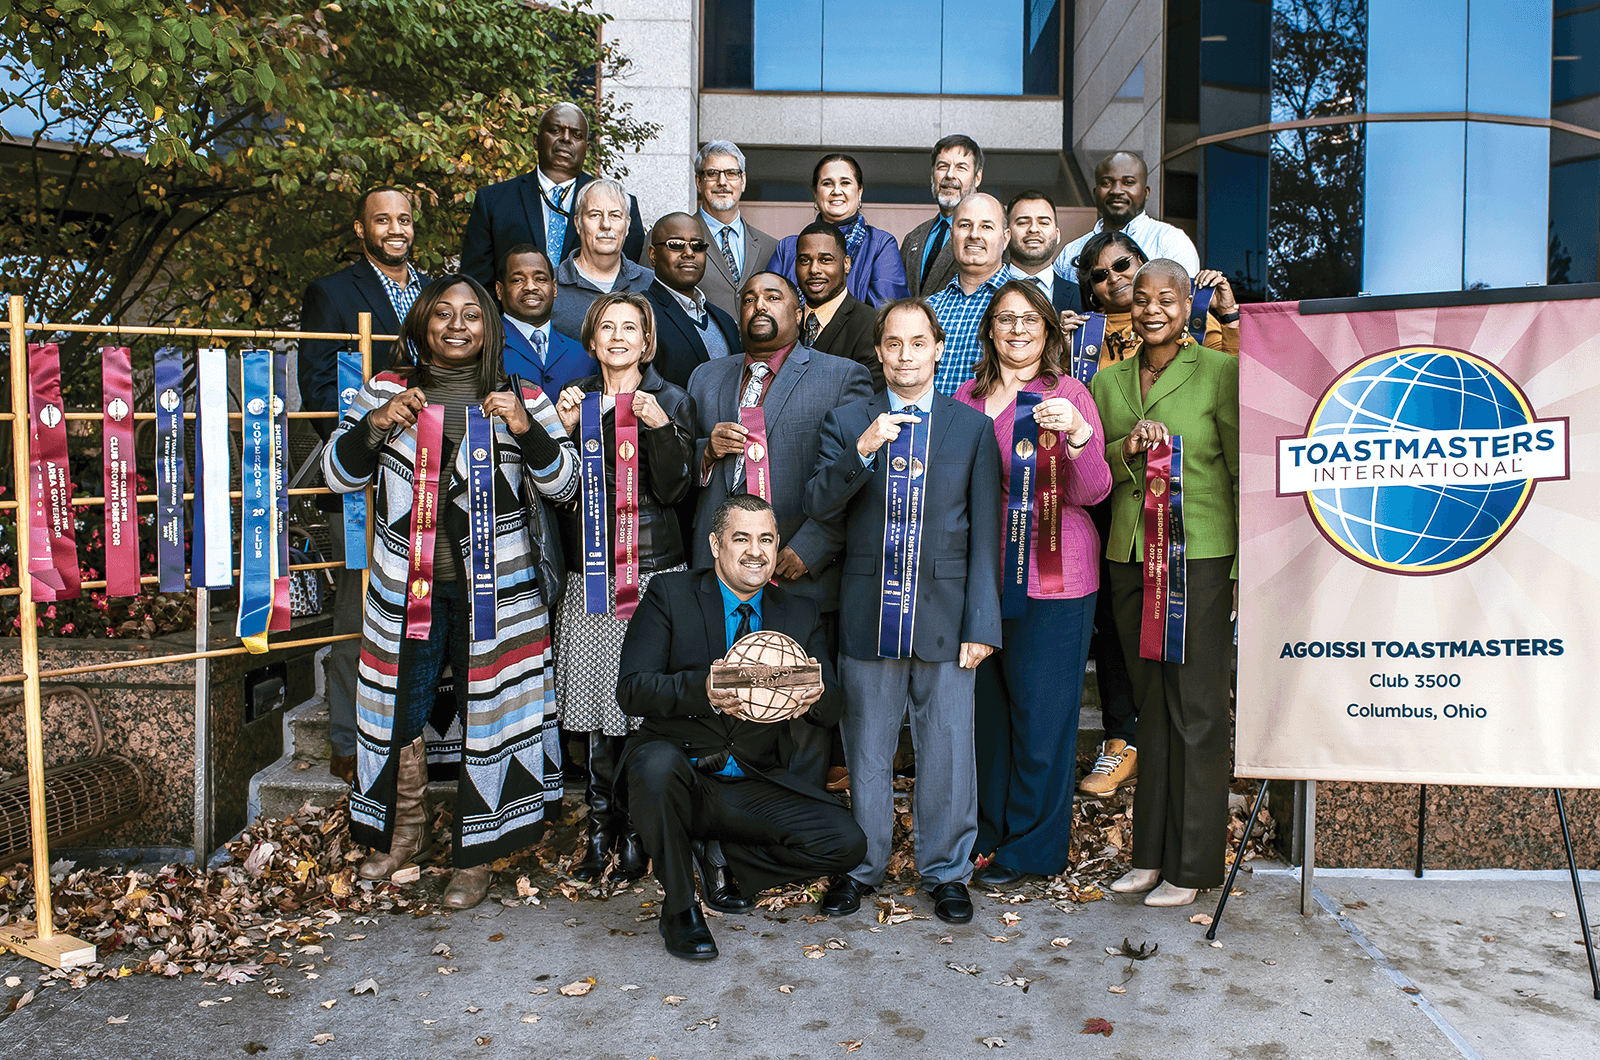 Group of Toastmasters members standing outside next to banner and ribbons